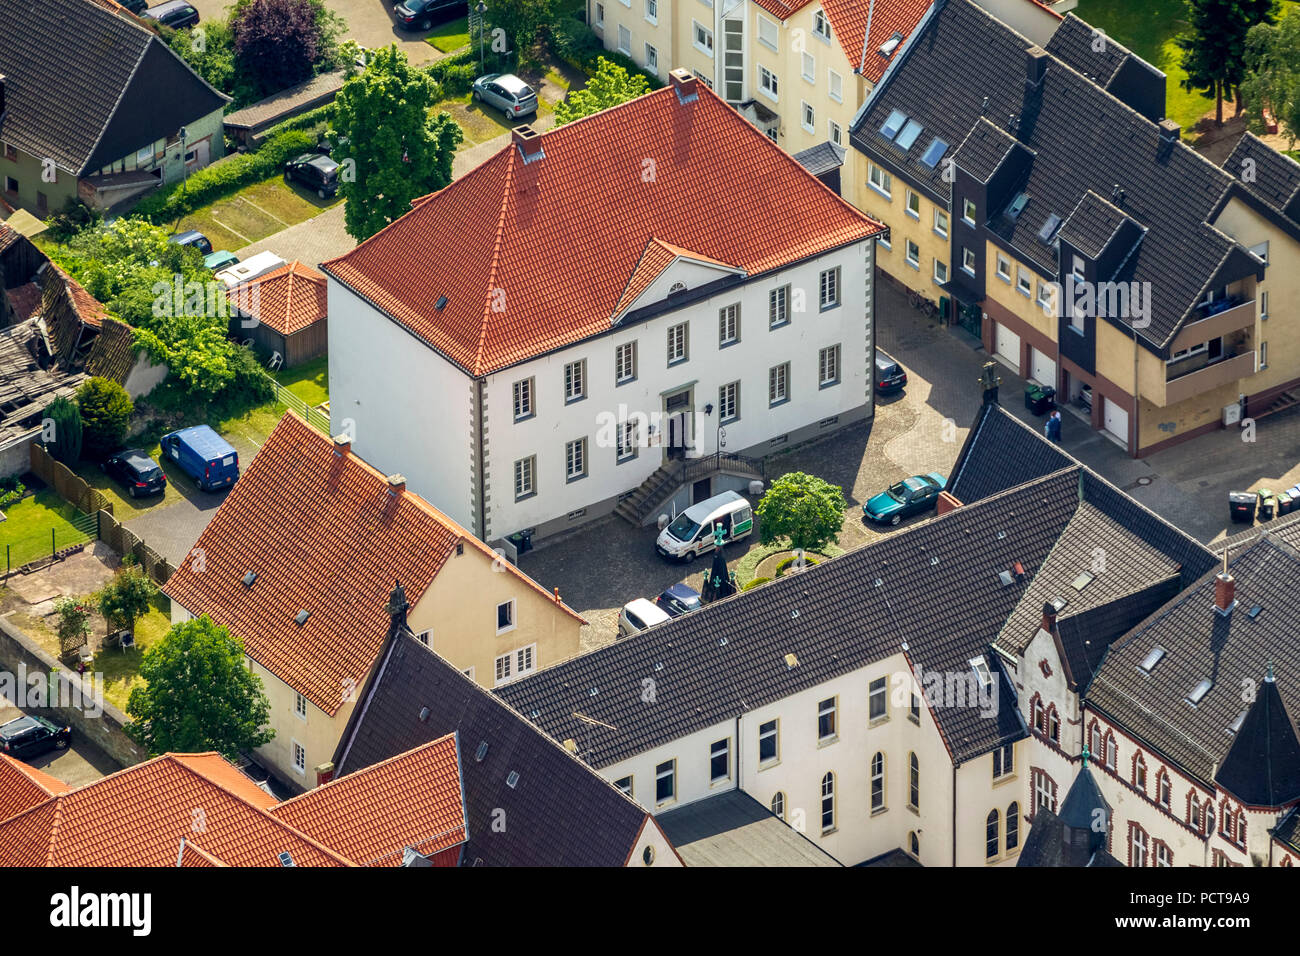 Brandis Stock Photos & Brandis Stock Images - Alamy